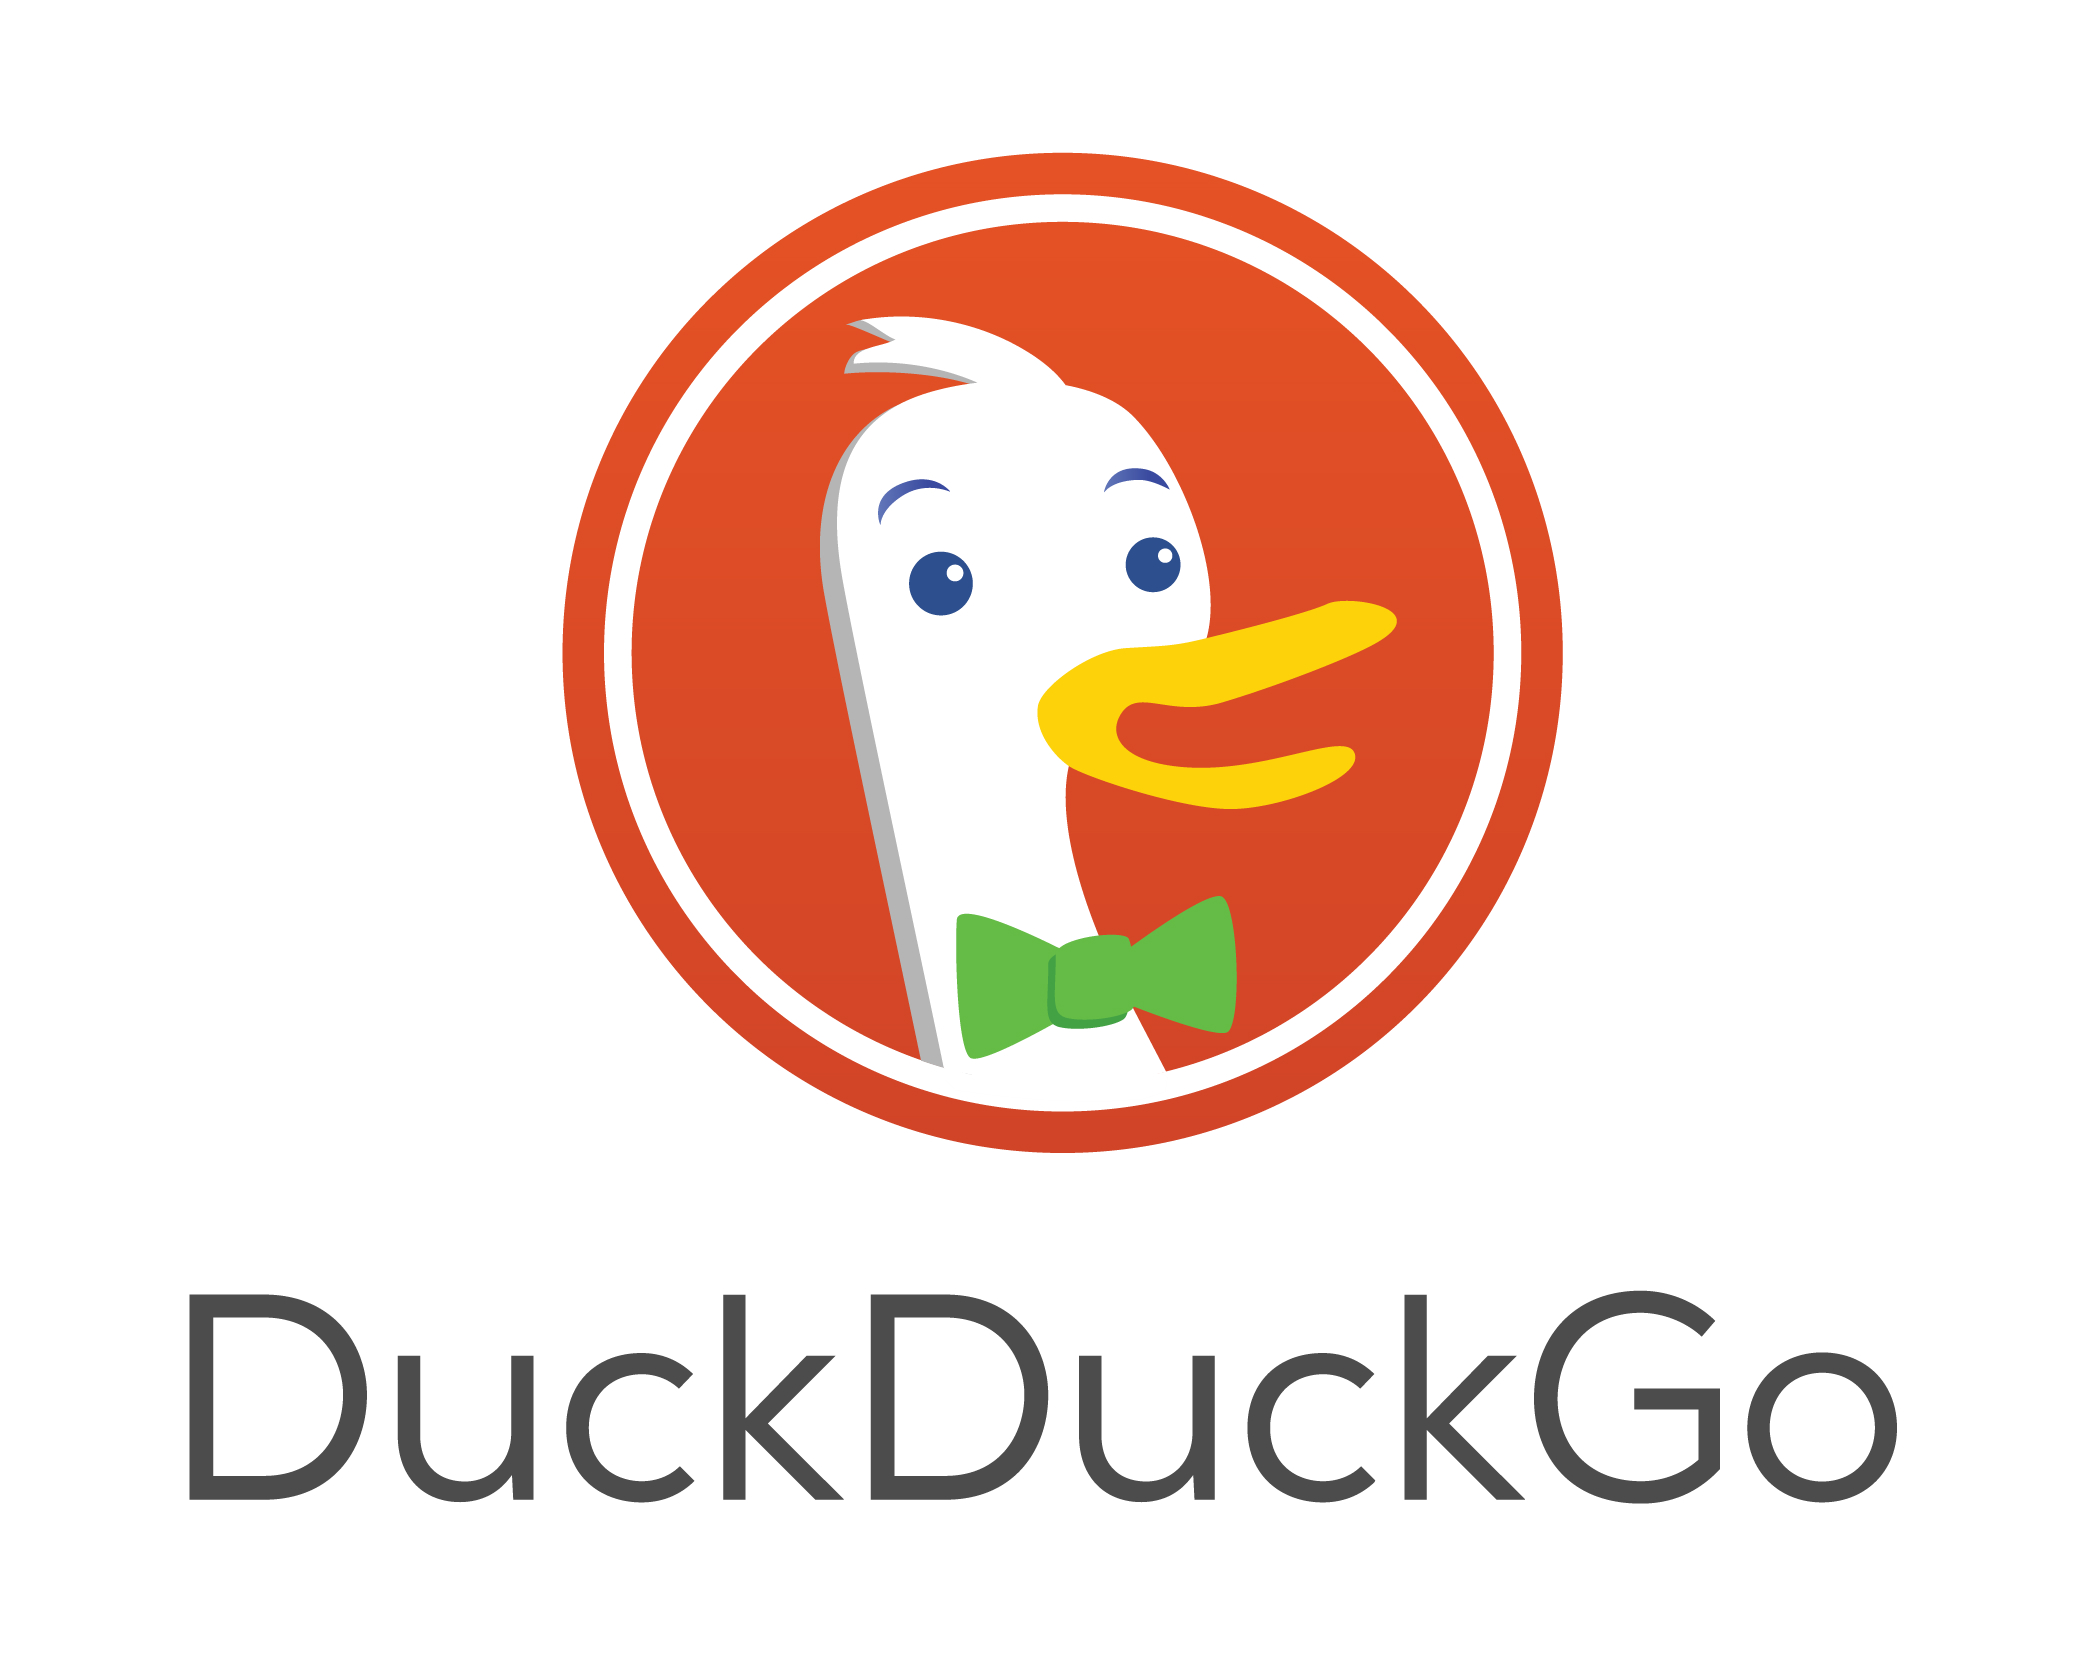 5 things DuckDuckGo do...